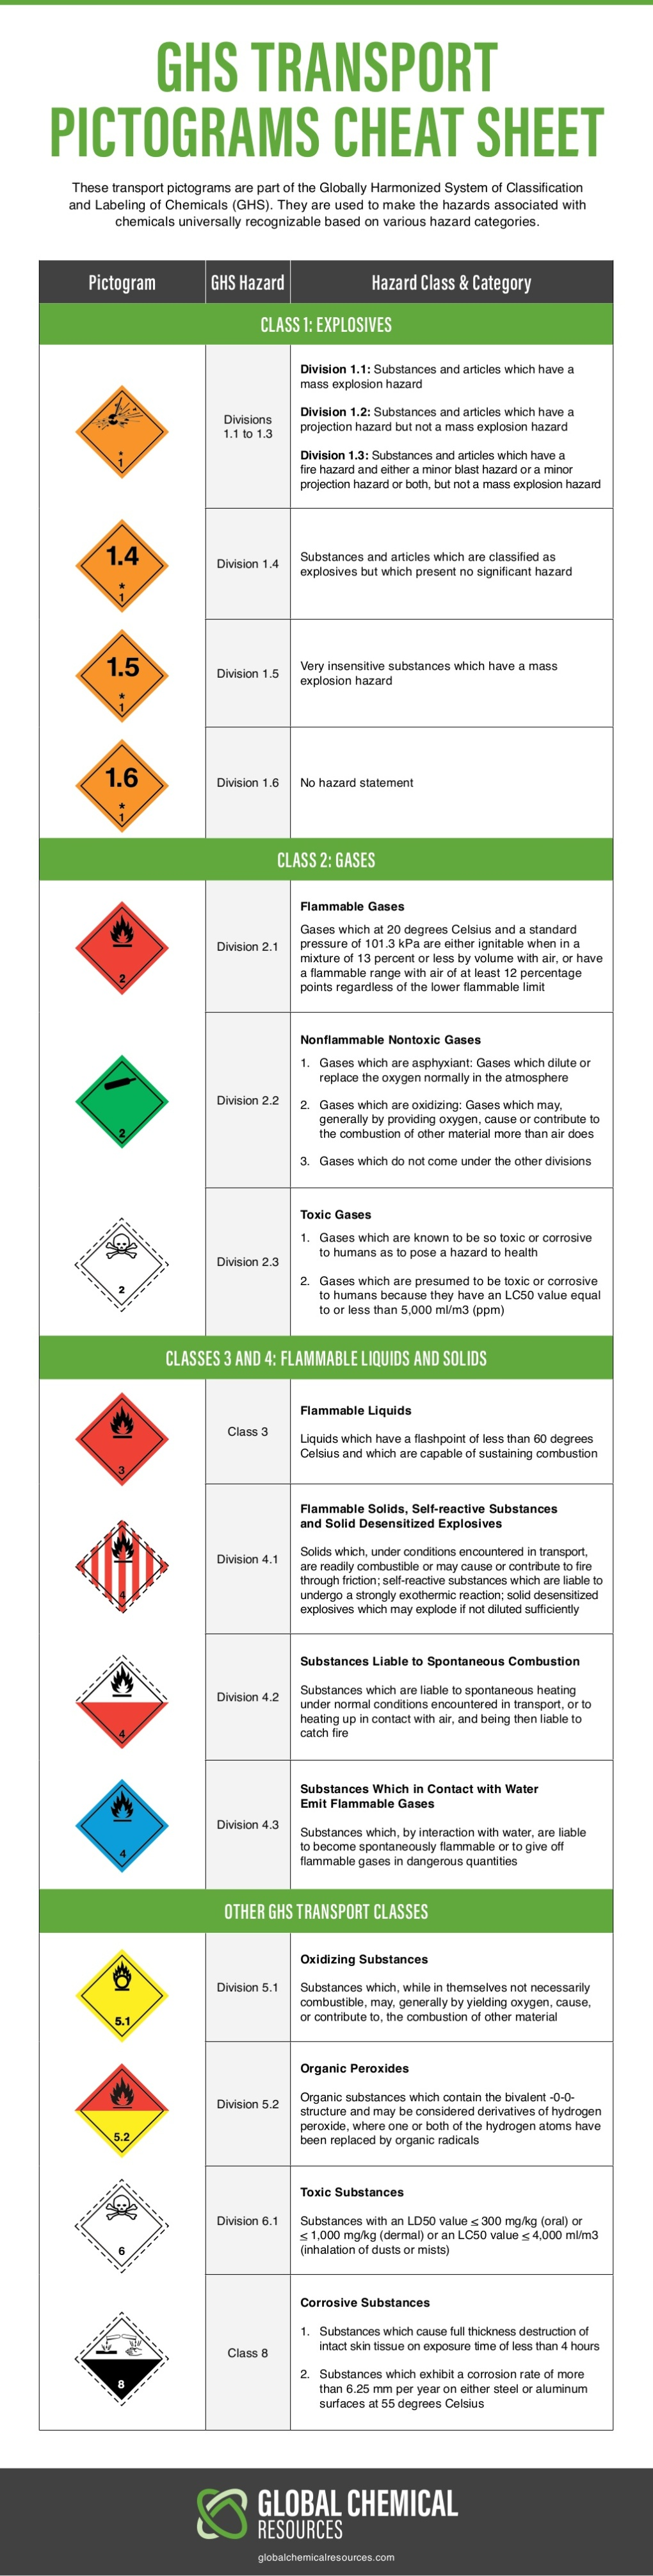 ghs-transport-pictograms-cheat-sheet-1-1024